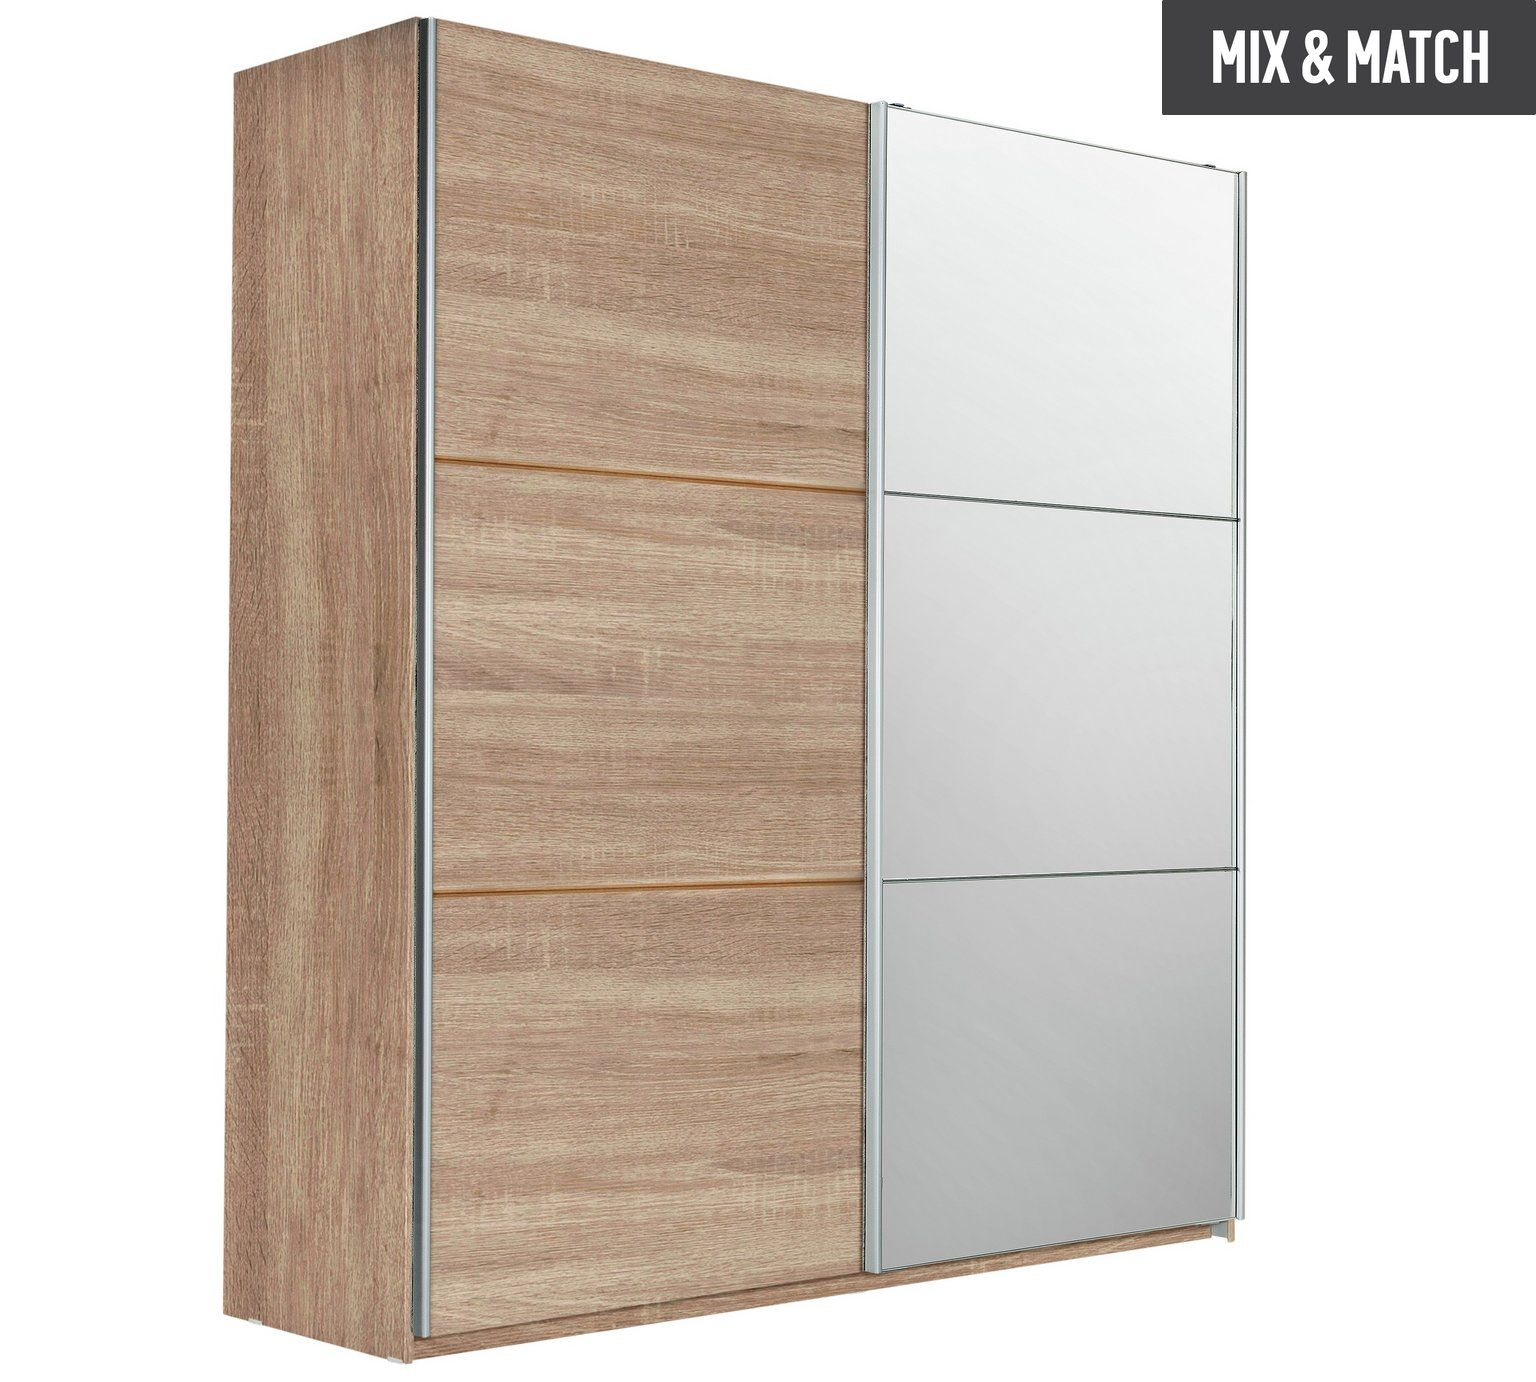 smart door on buy at index product price the picture options cupboard shown online as wardrobe ajaxcart sohomod id best